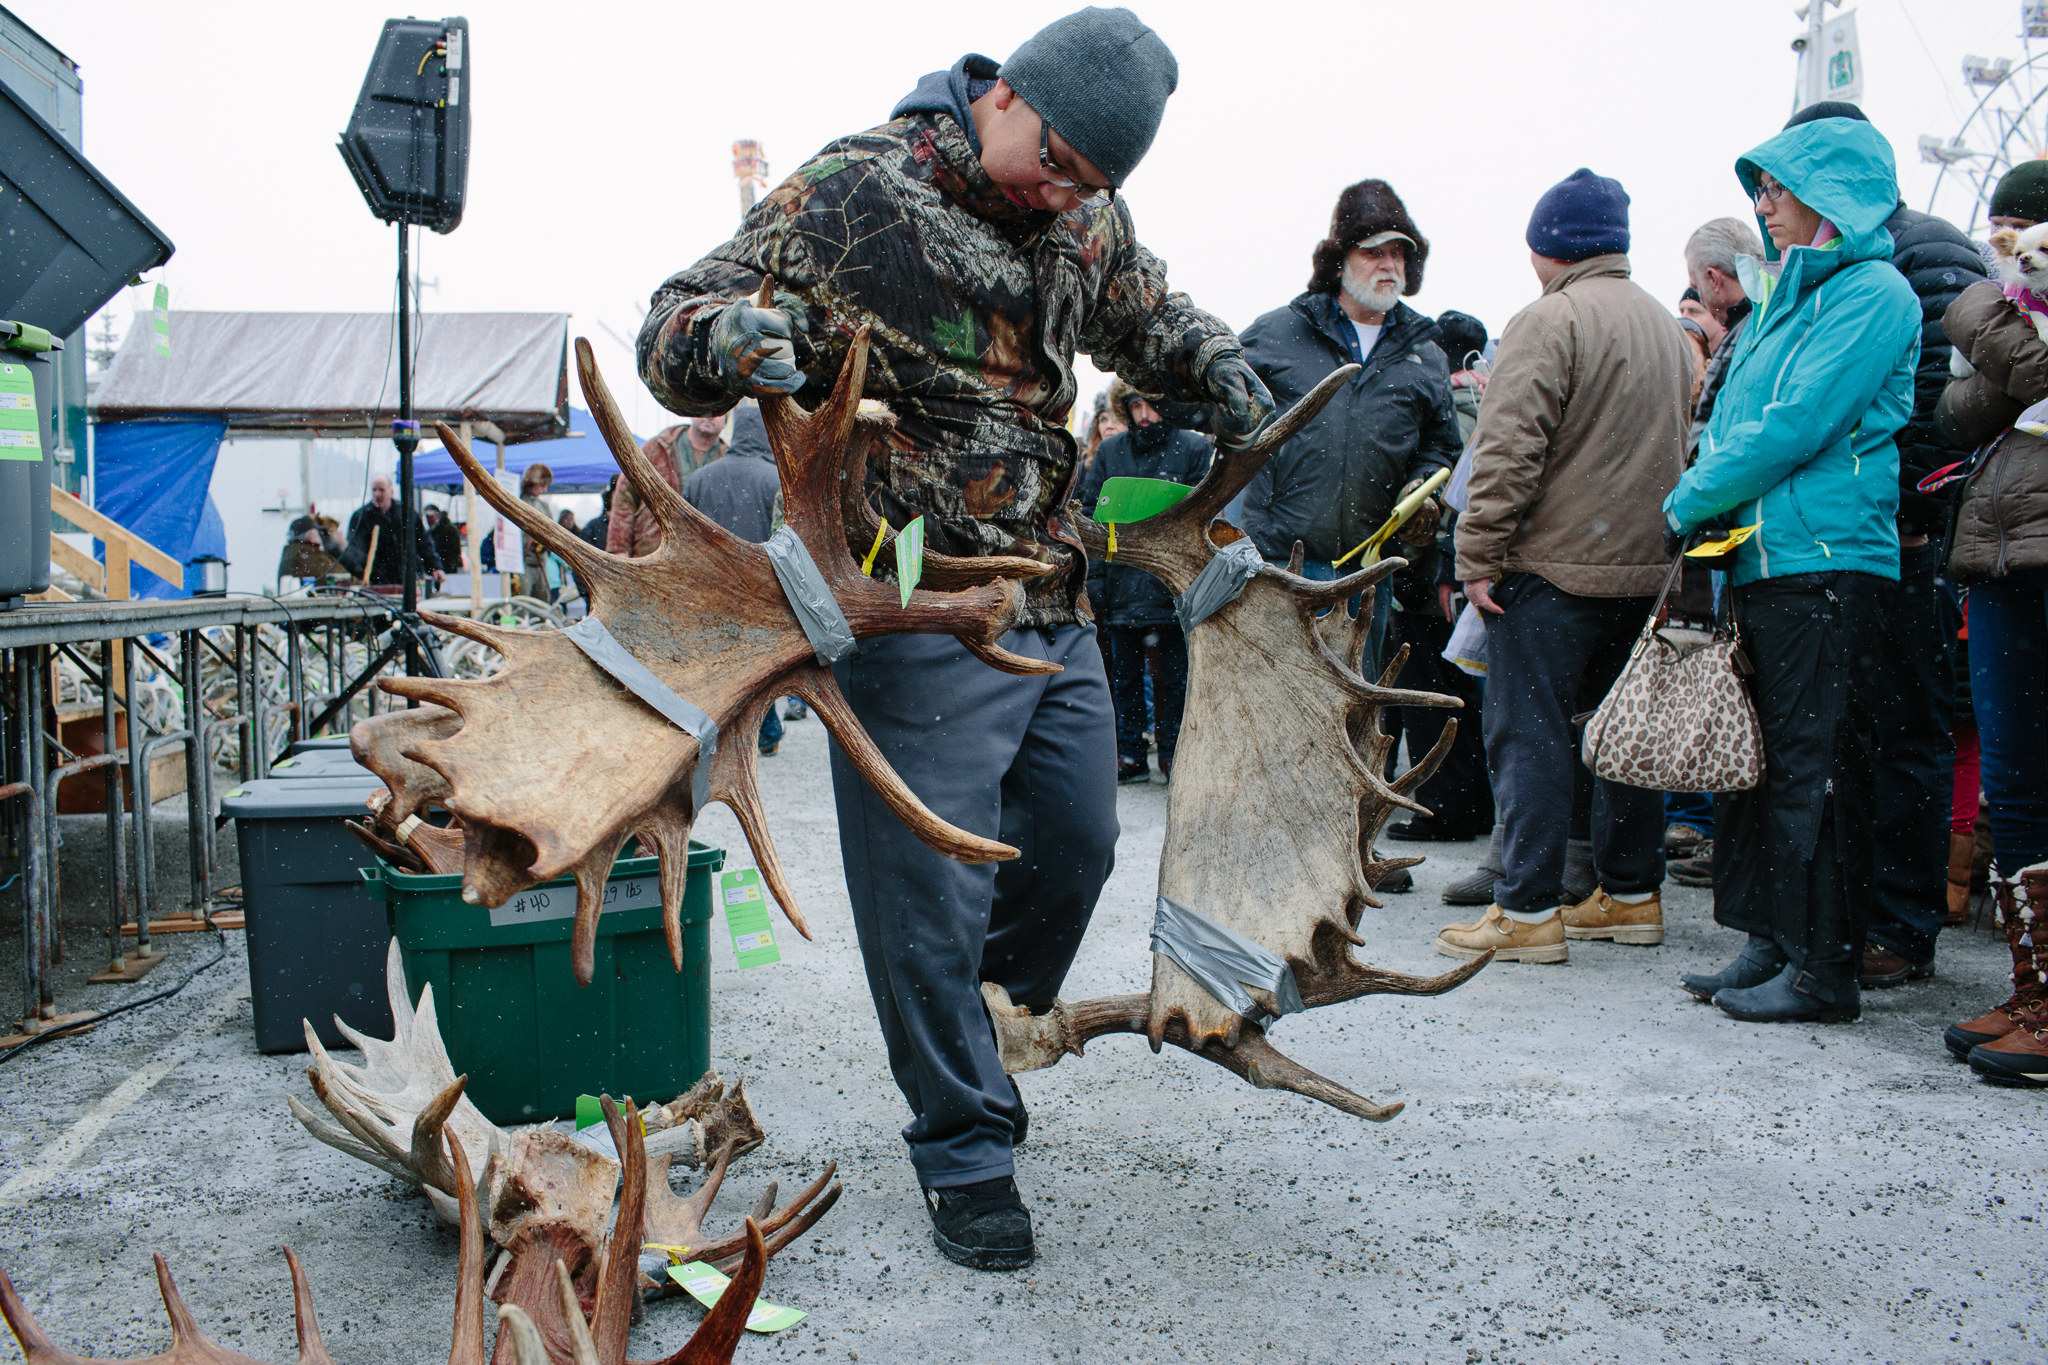 A volunteer brings over moose antlers to be bid upon by the crowd. Many bidders were artisans who will use the horns for carving and other commercial resale purposes.